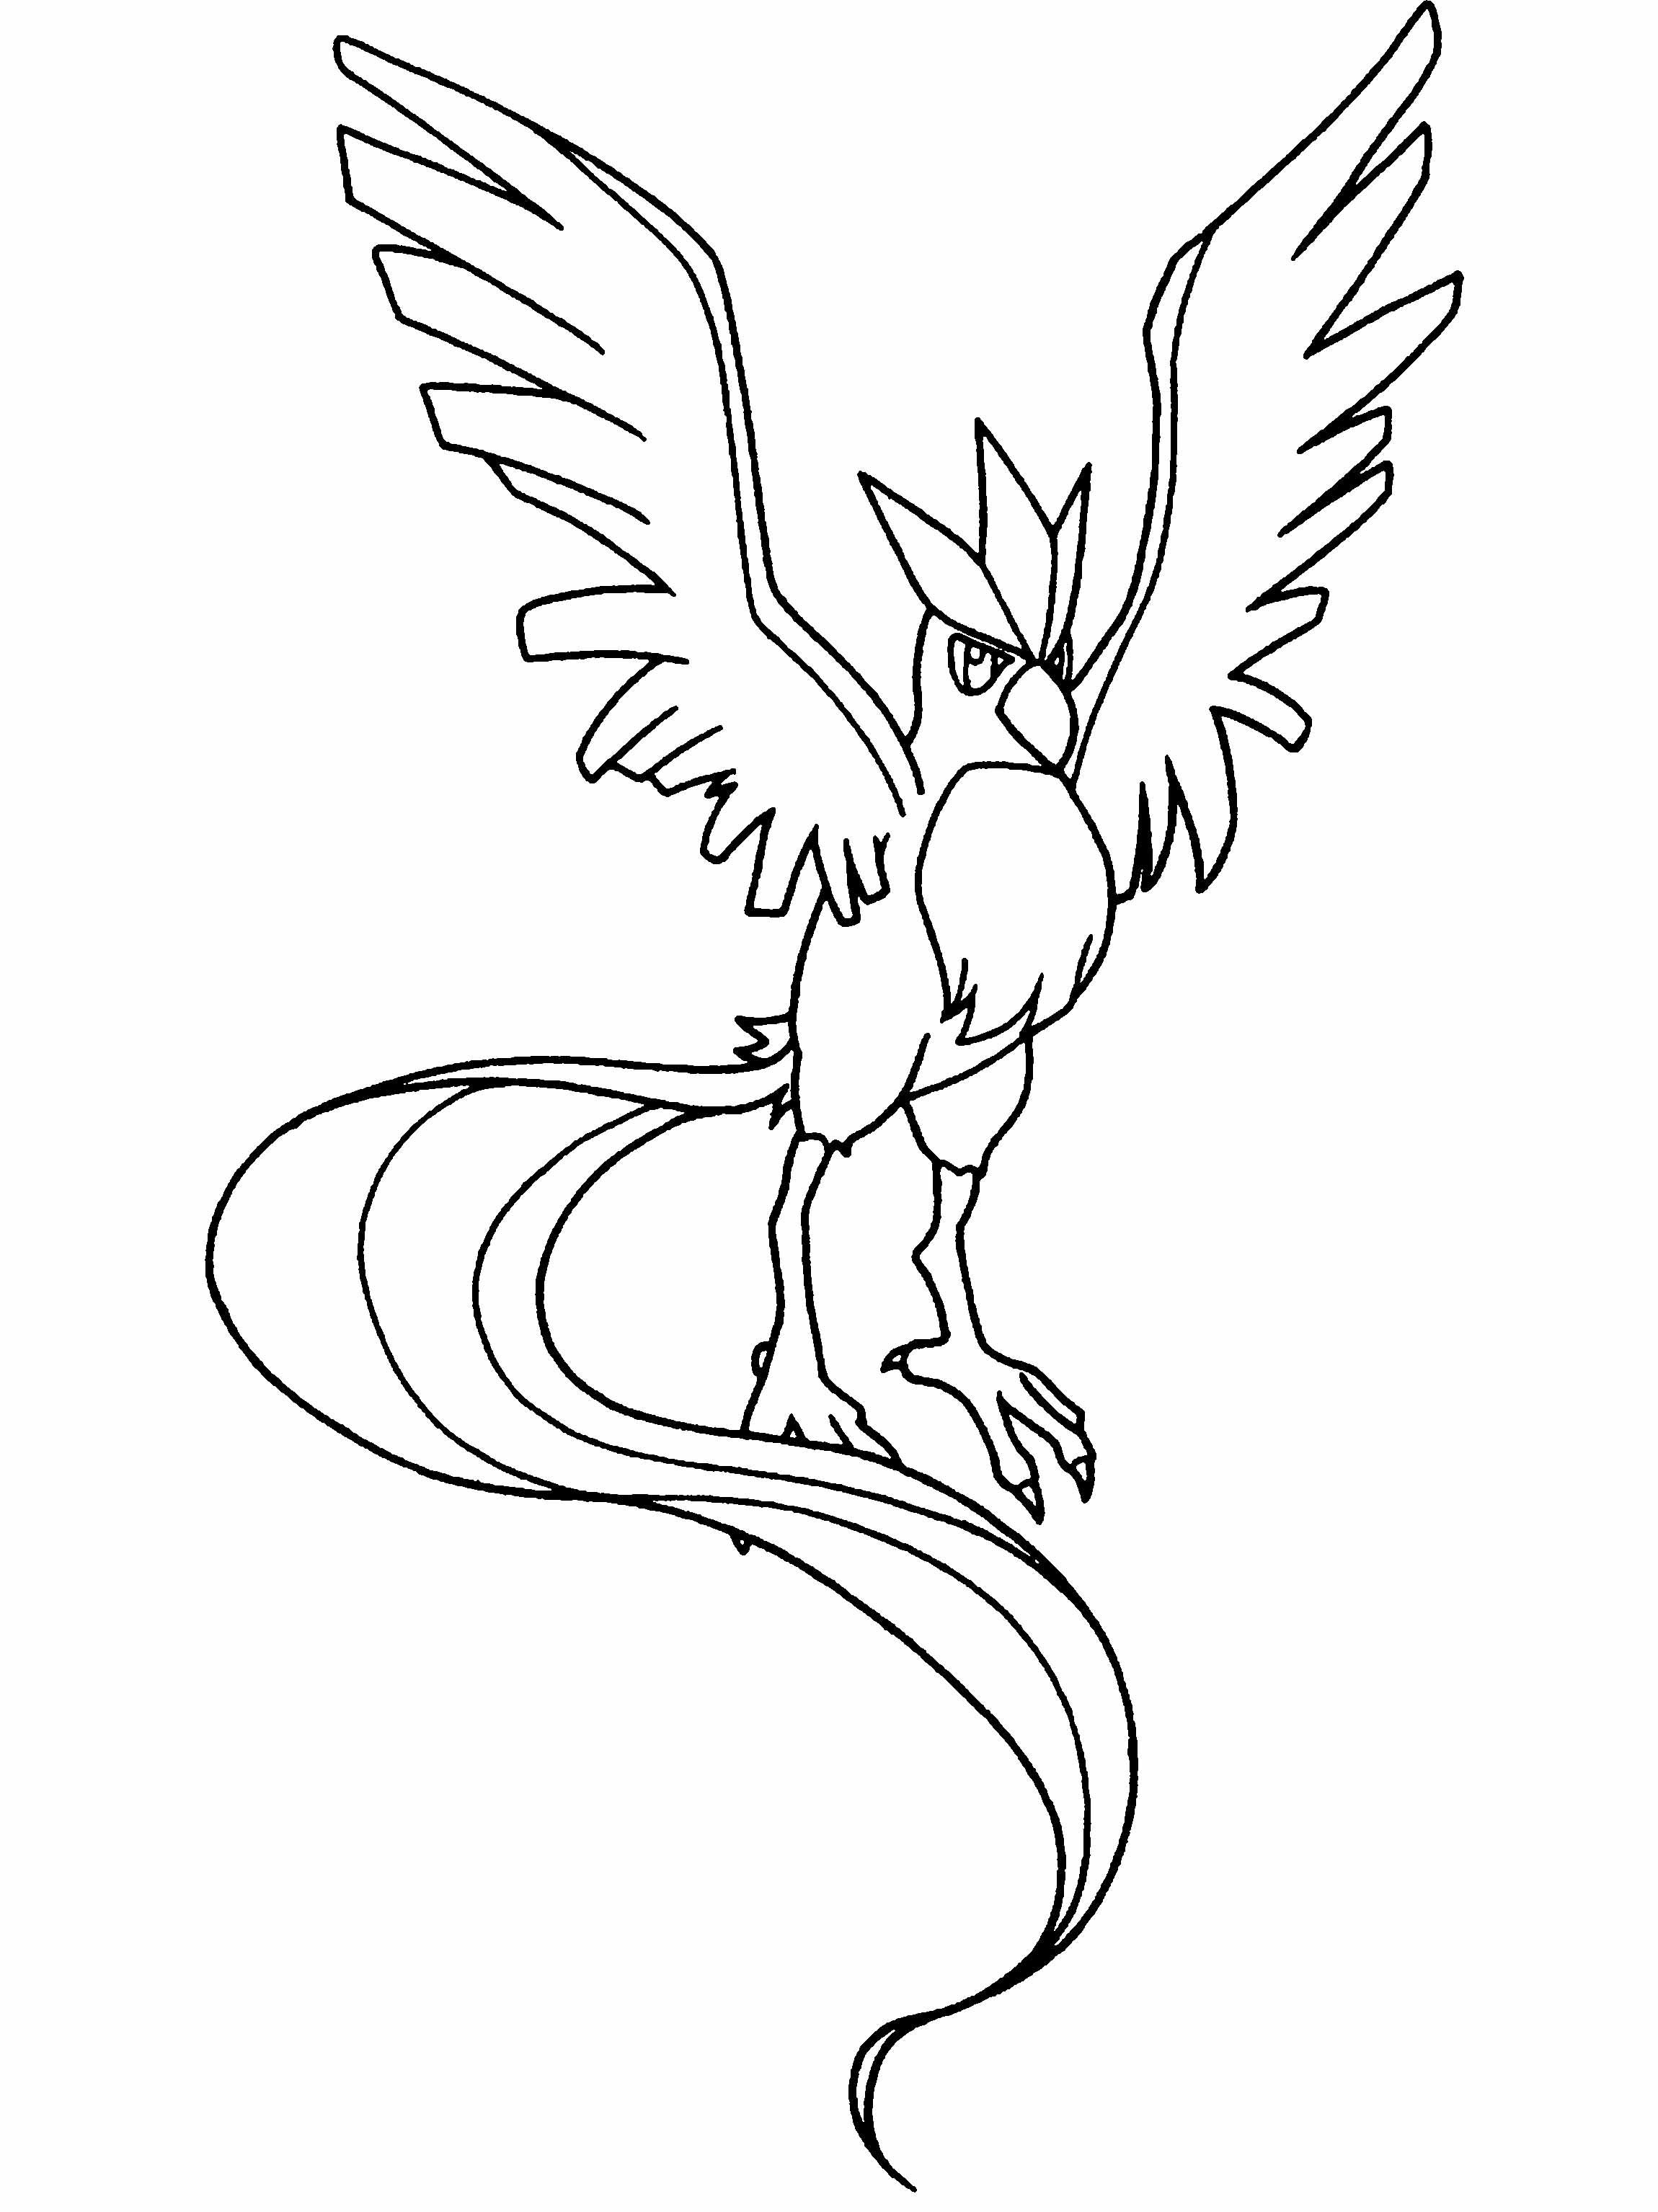 A Great Bird Pokemon Coloring Pages Pokemon Coloring Pages